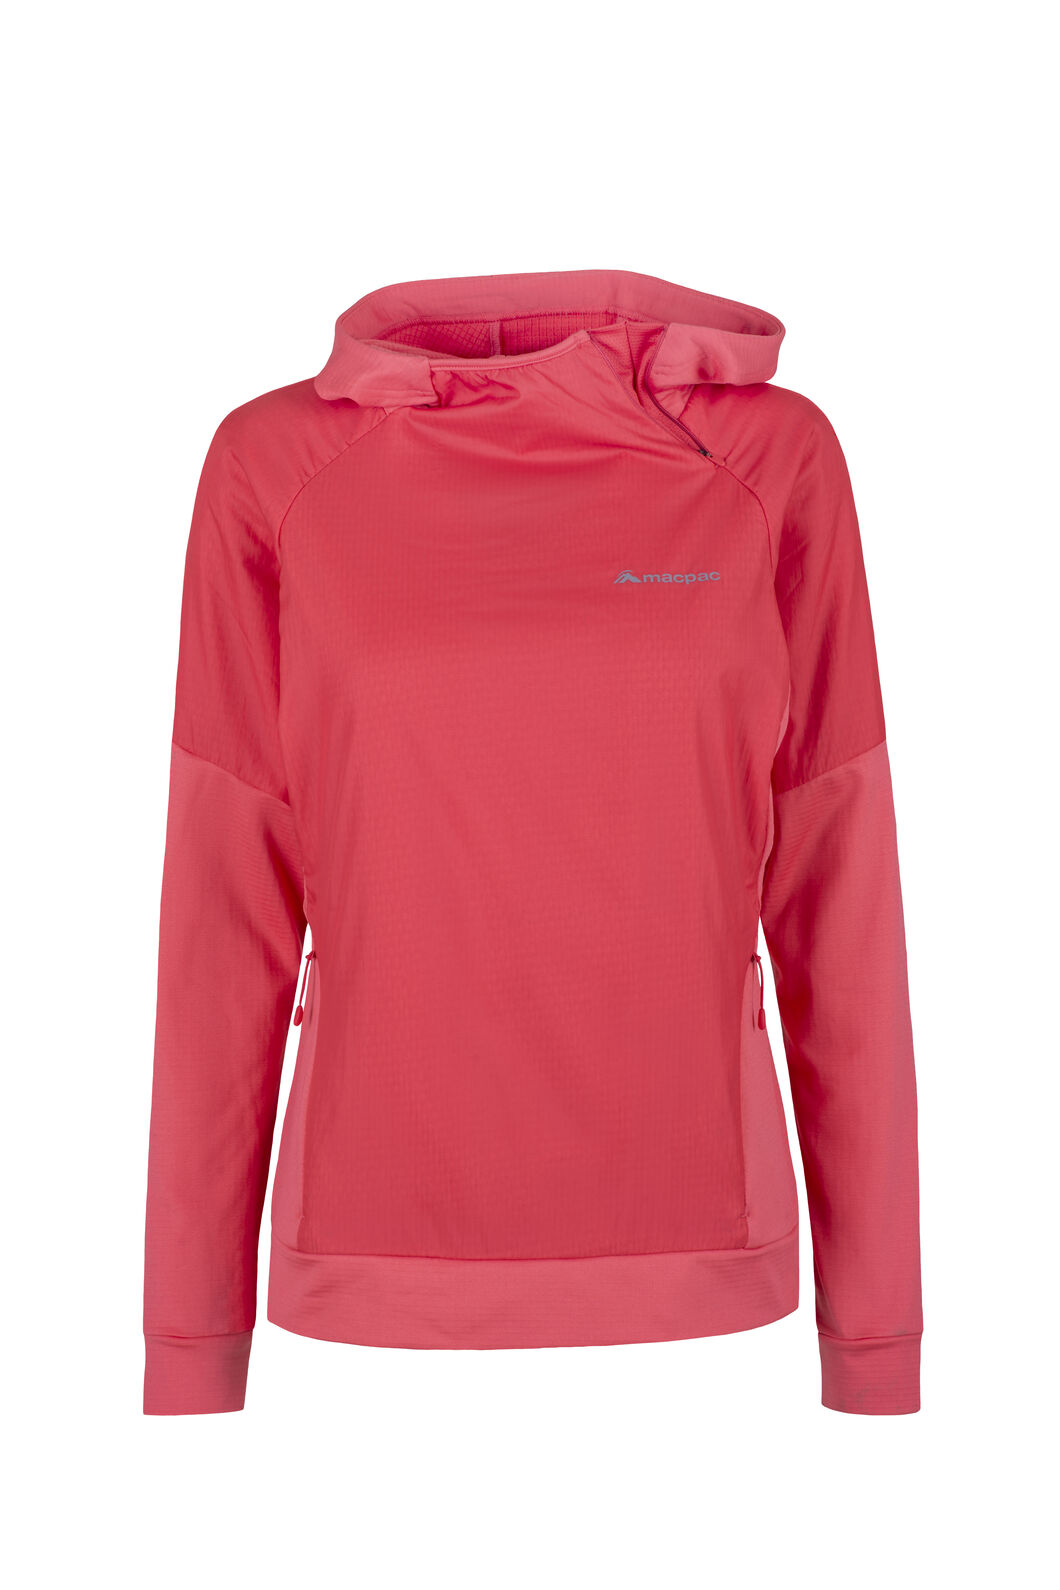 Macpac Saros Polartec® Alpha® Pullover - Women's, Rose of Sharon, hi-res